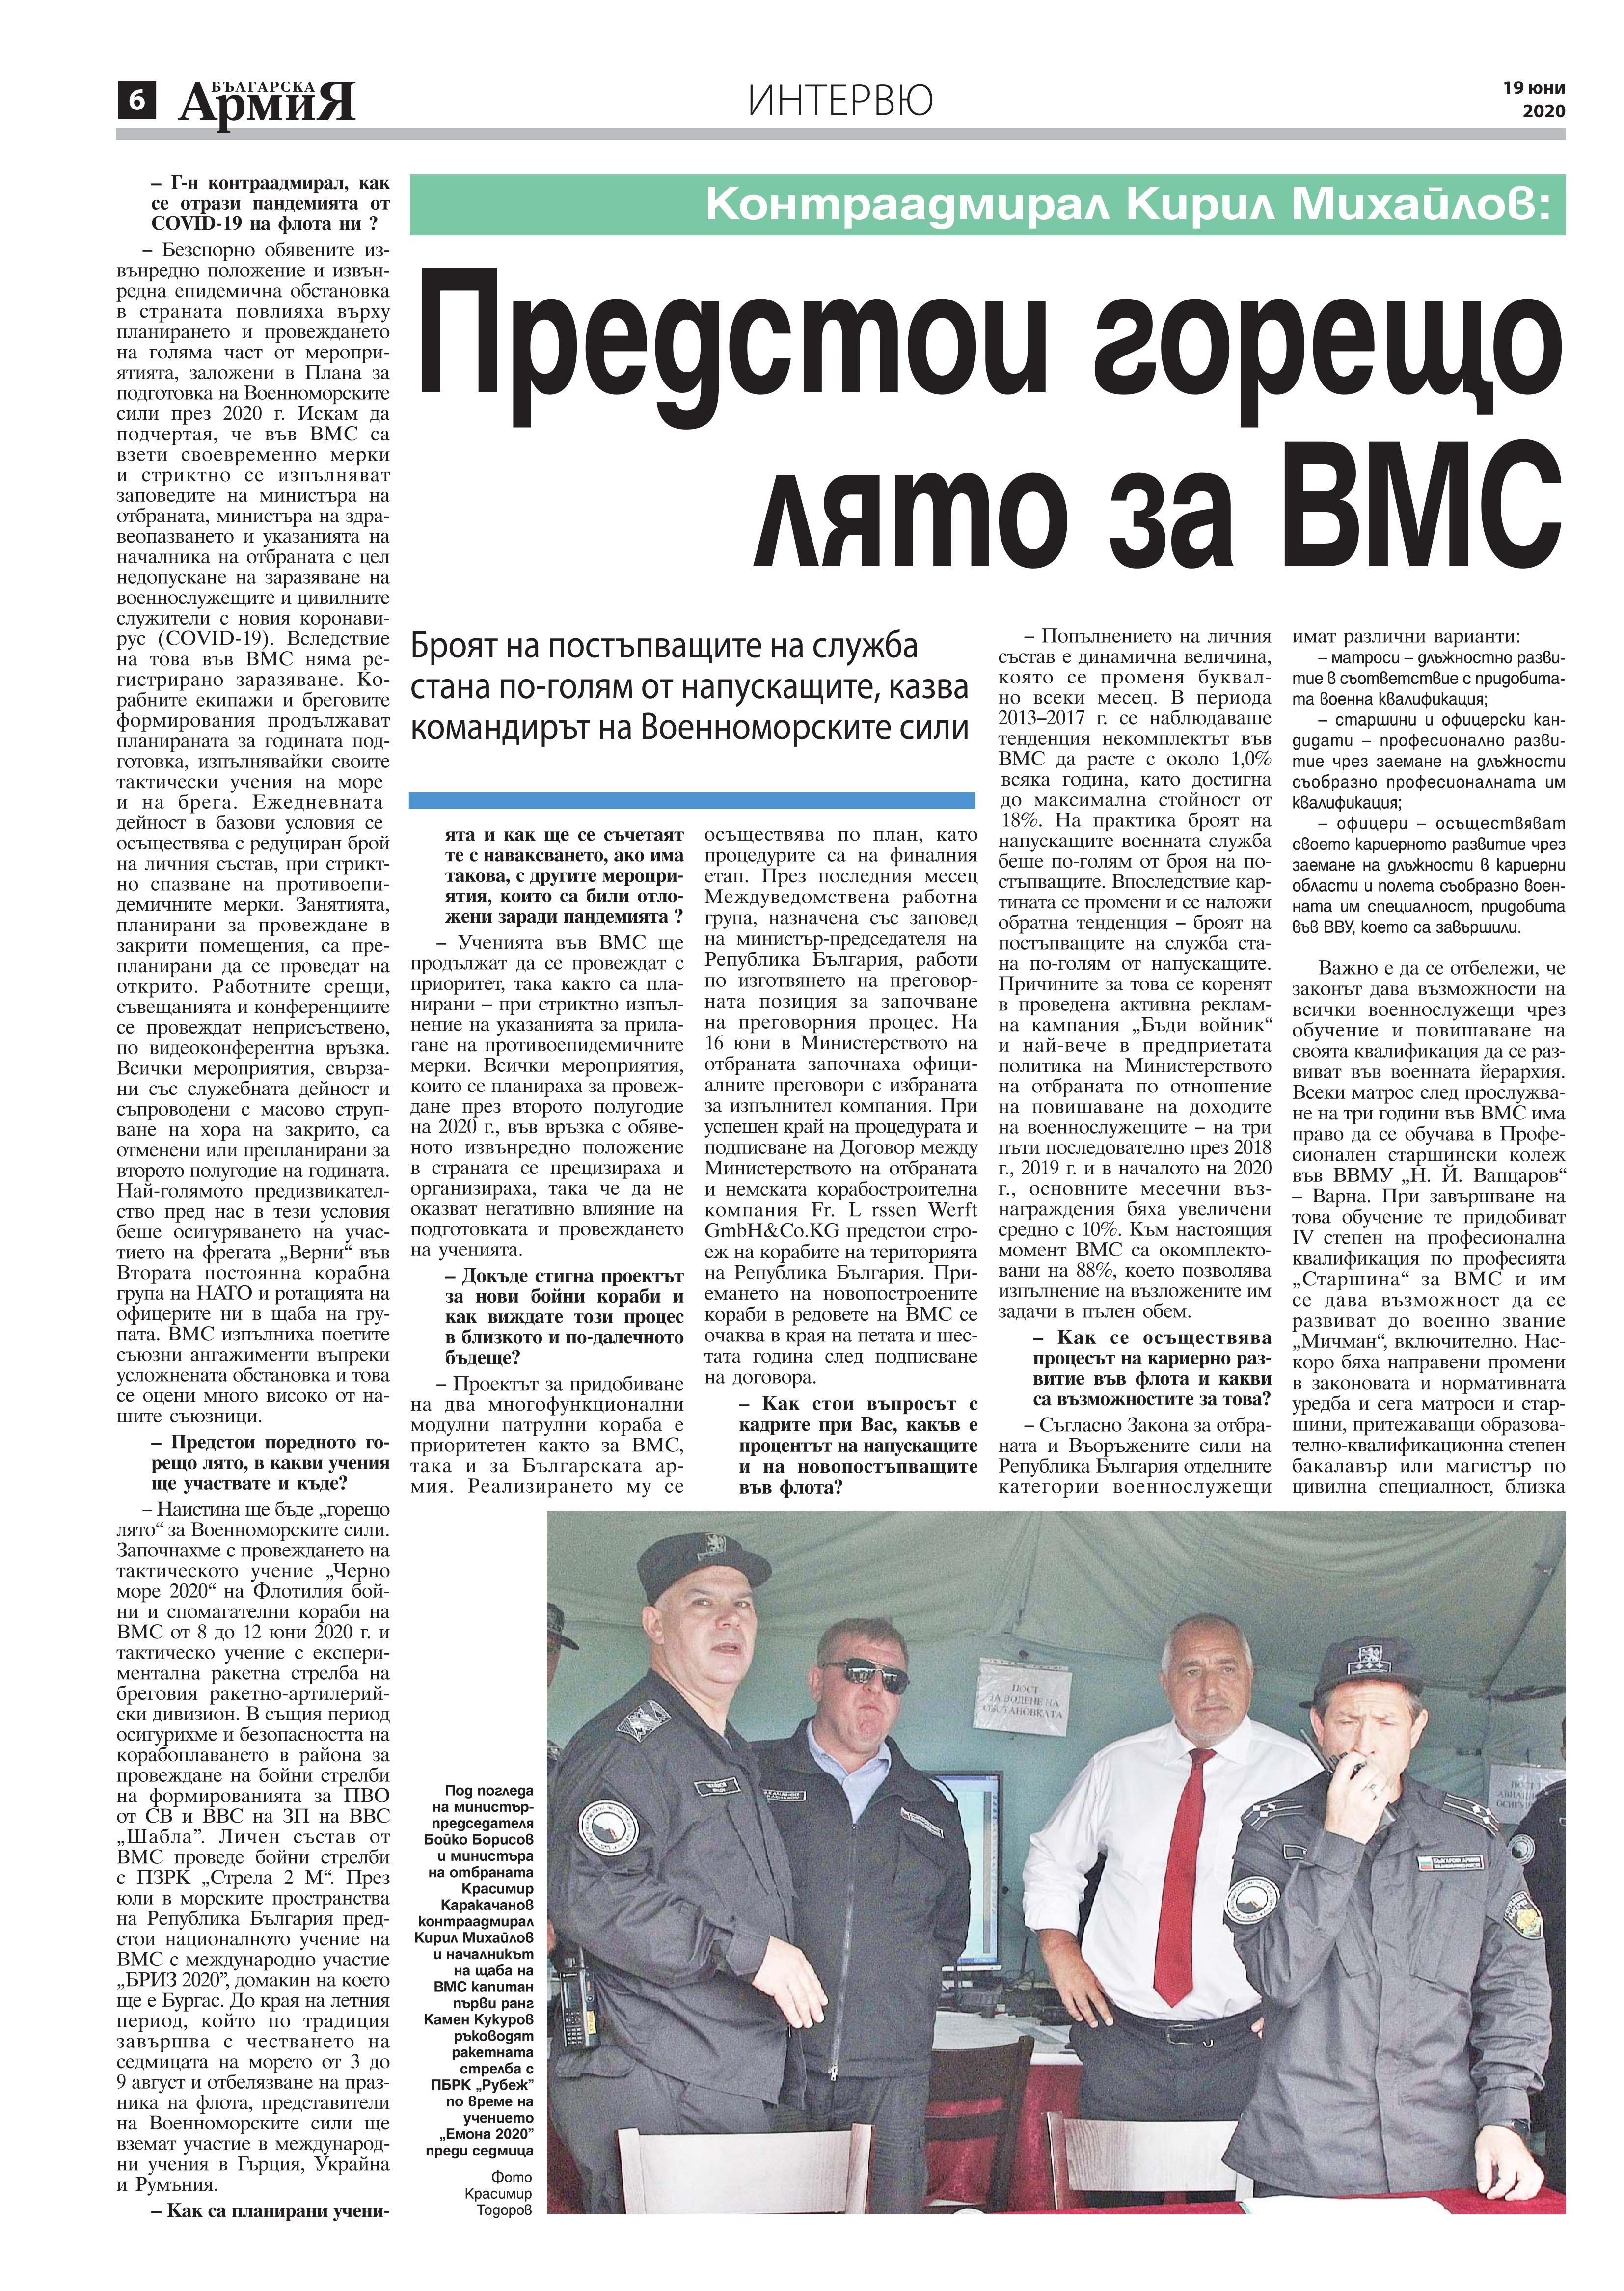 https://www.armymedia.bg/wp-content/uploads/2015/06/06.page1_-141.jpg